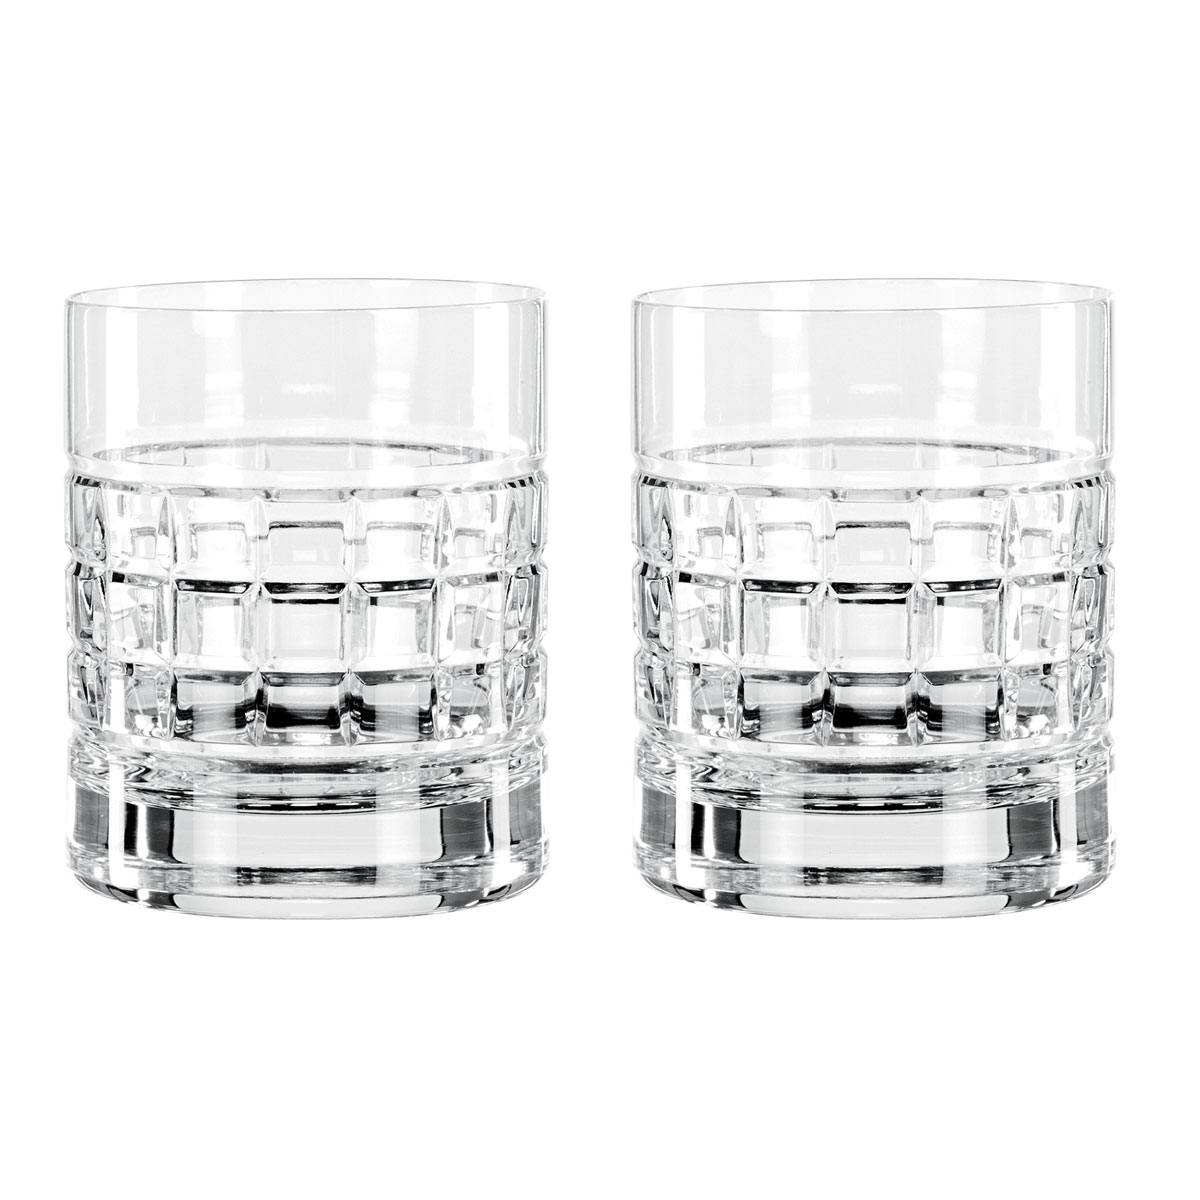 Waterford Crystal, Contemporary London DOF Crystal Tumblers, Pair